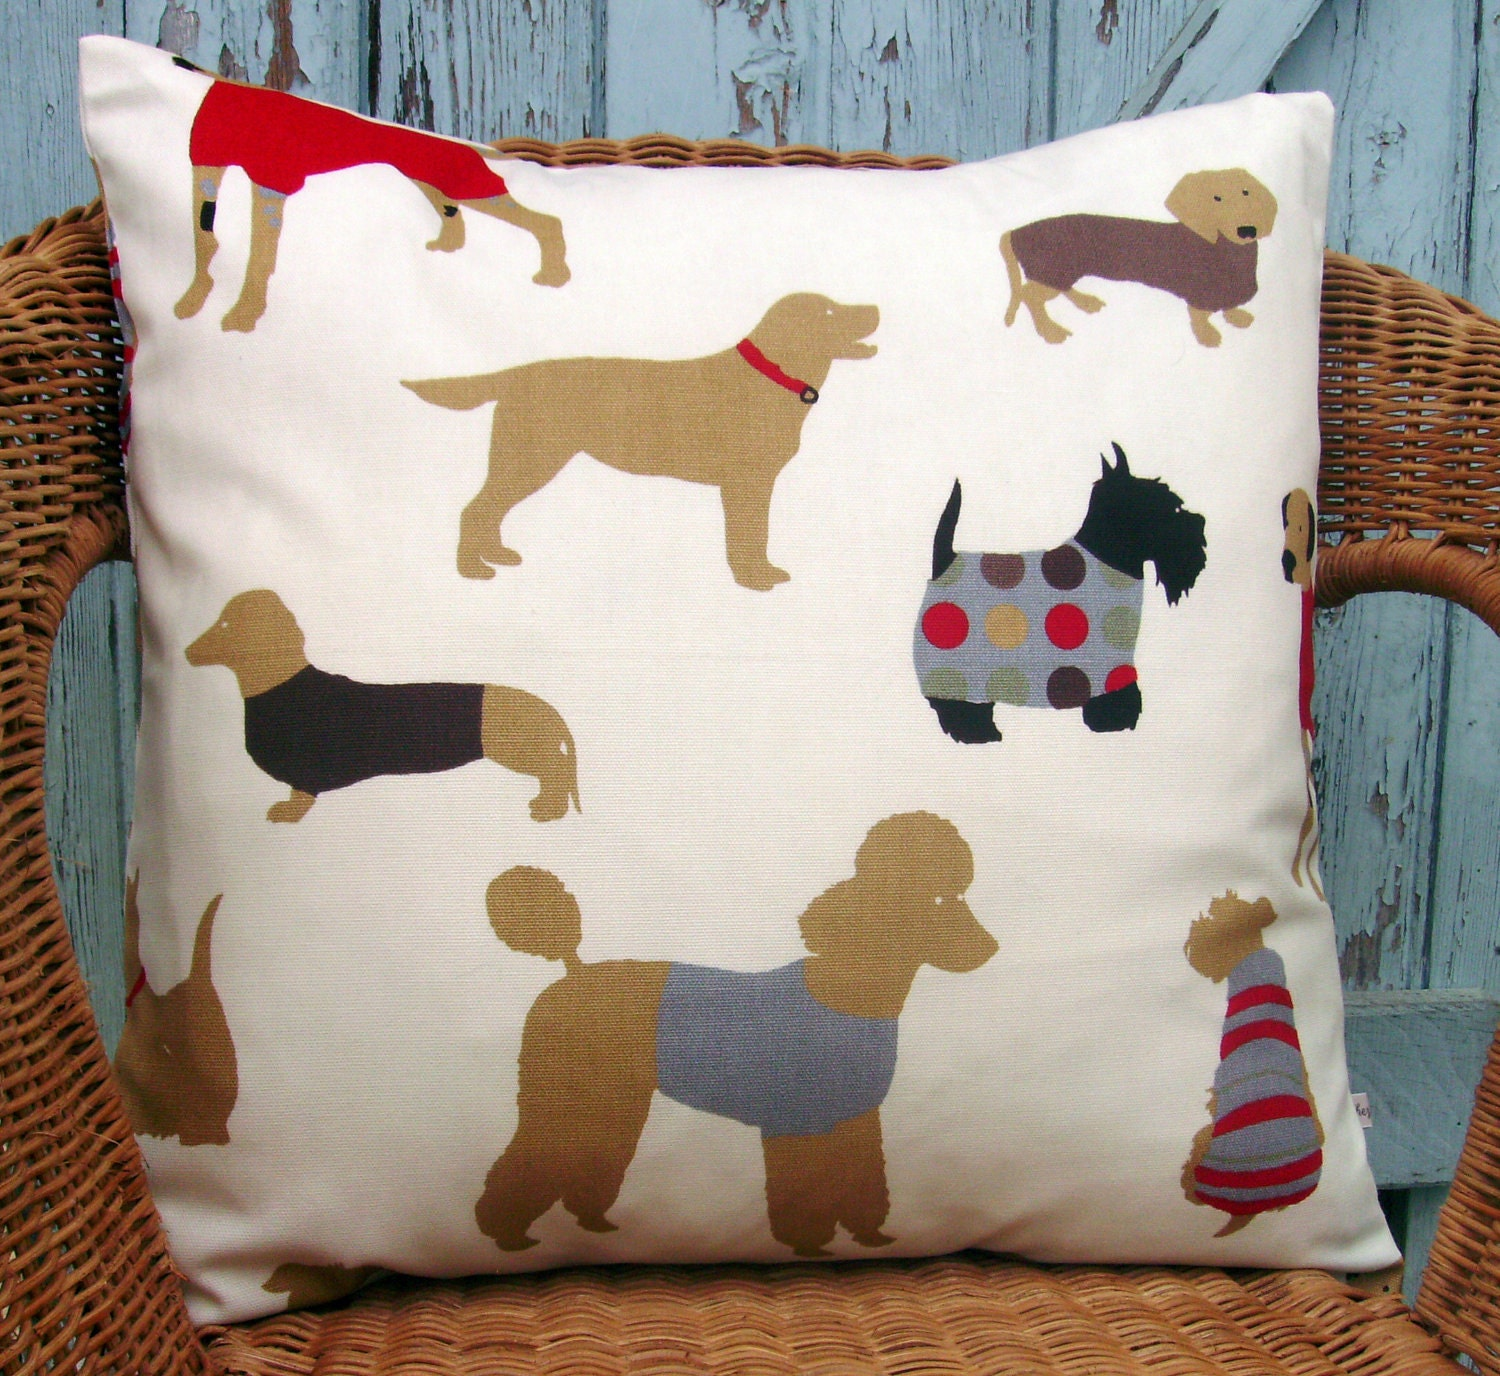 Decorative Pillows Dog : dog pillow cover decorative pillow cover puppy by chezlele